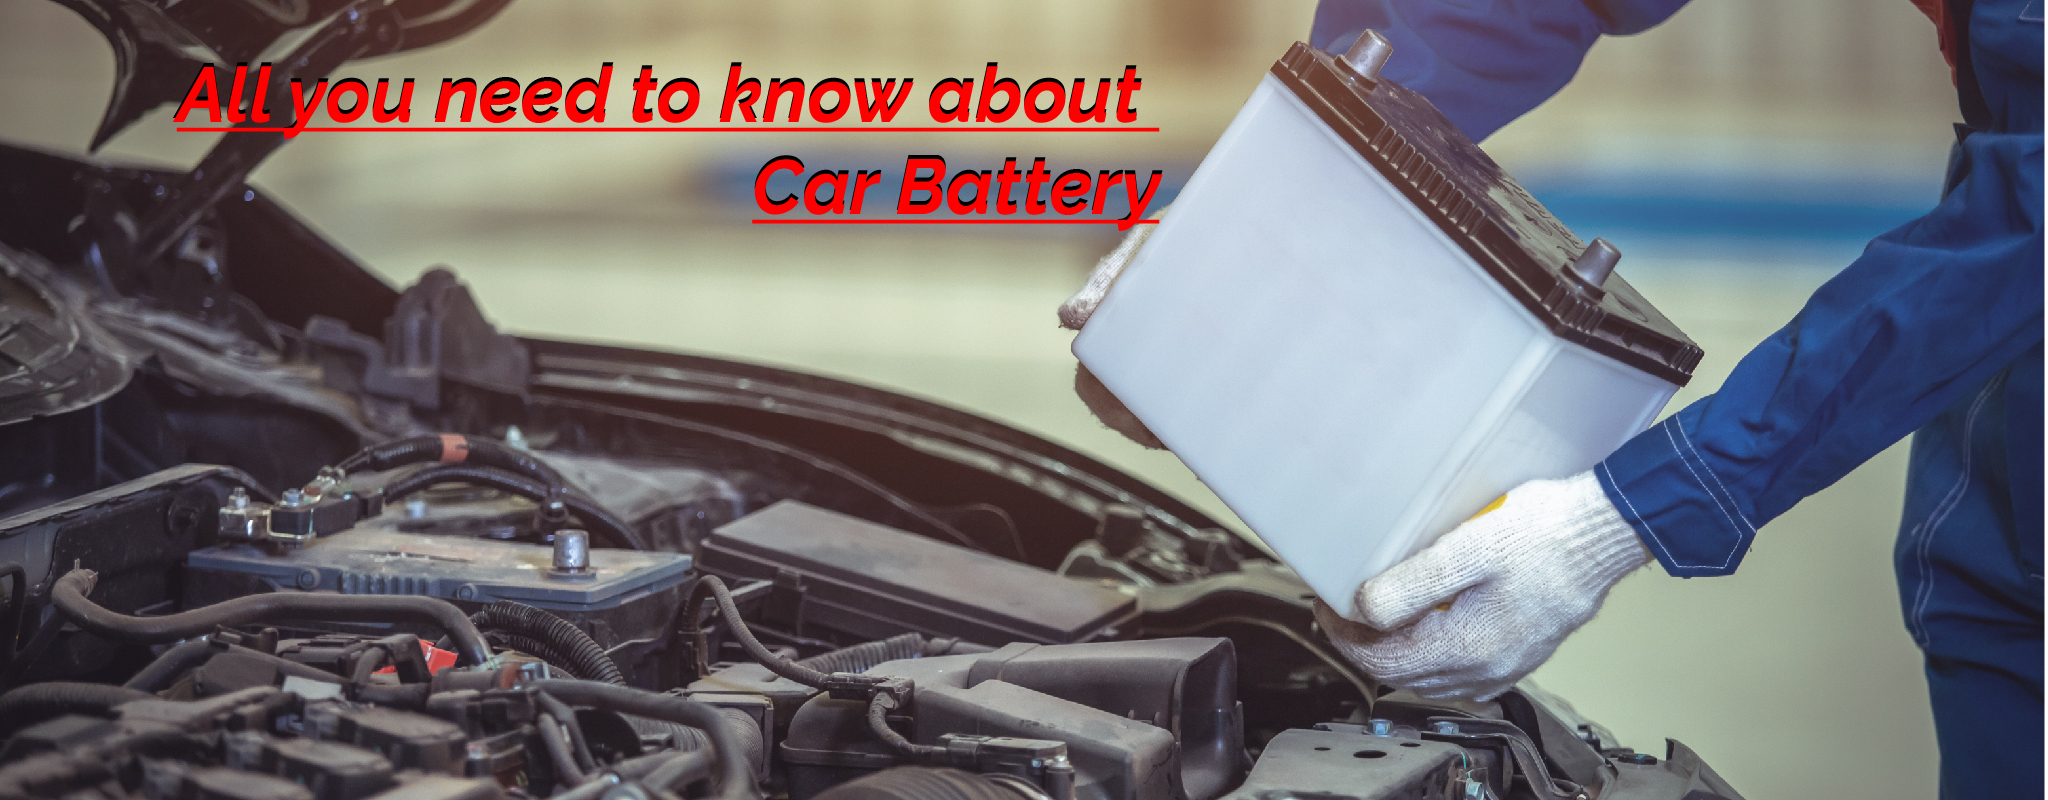 All you need to know about car battery